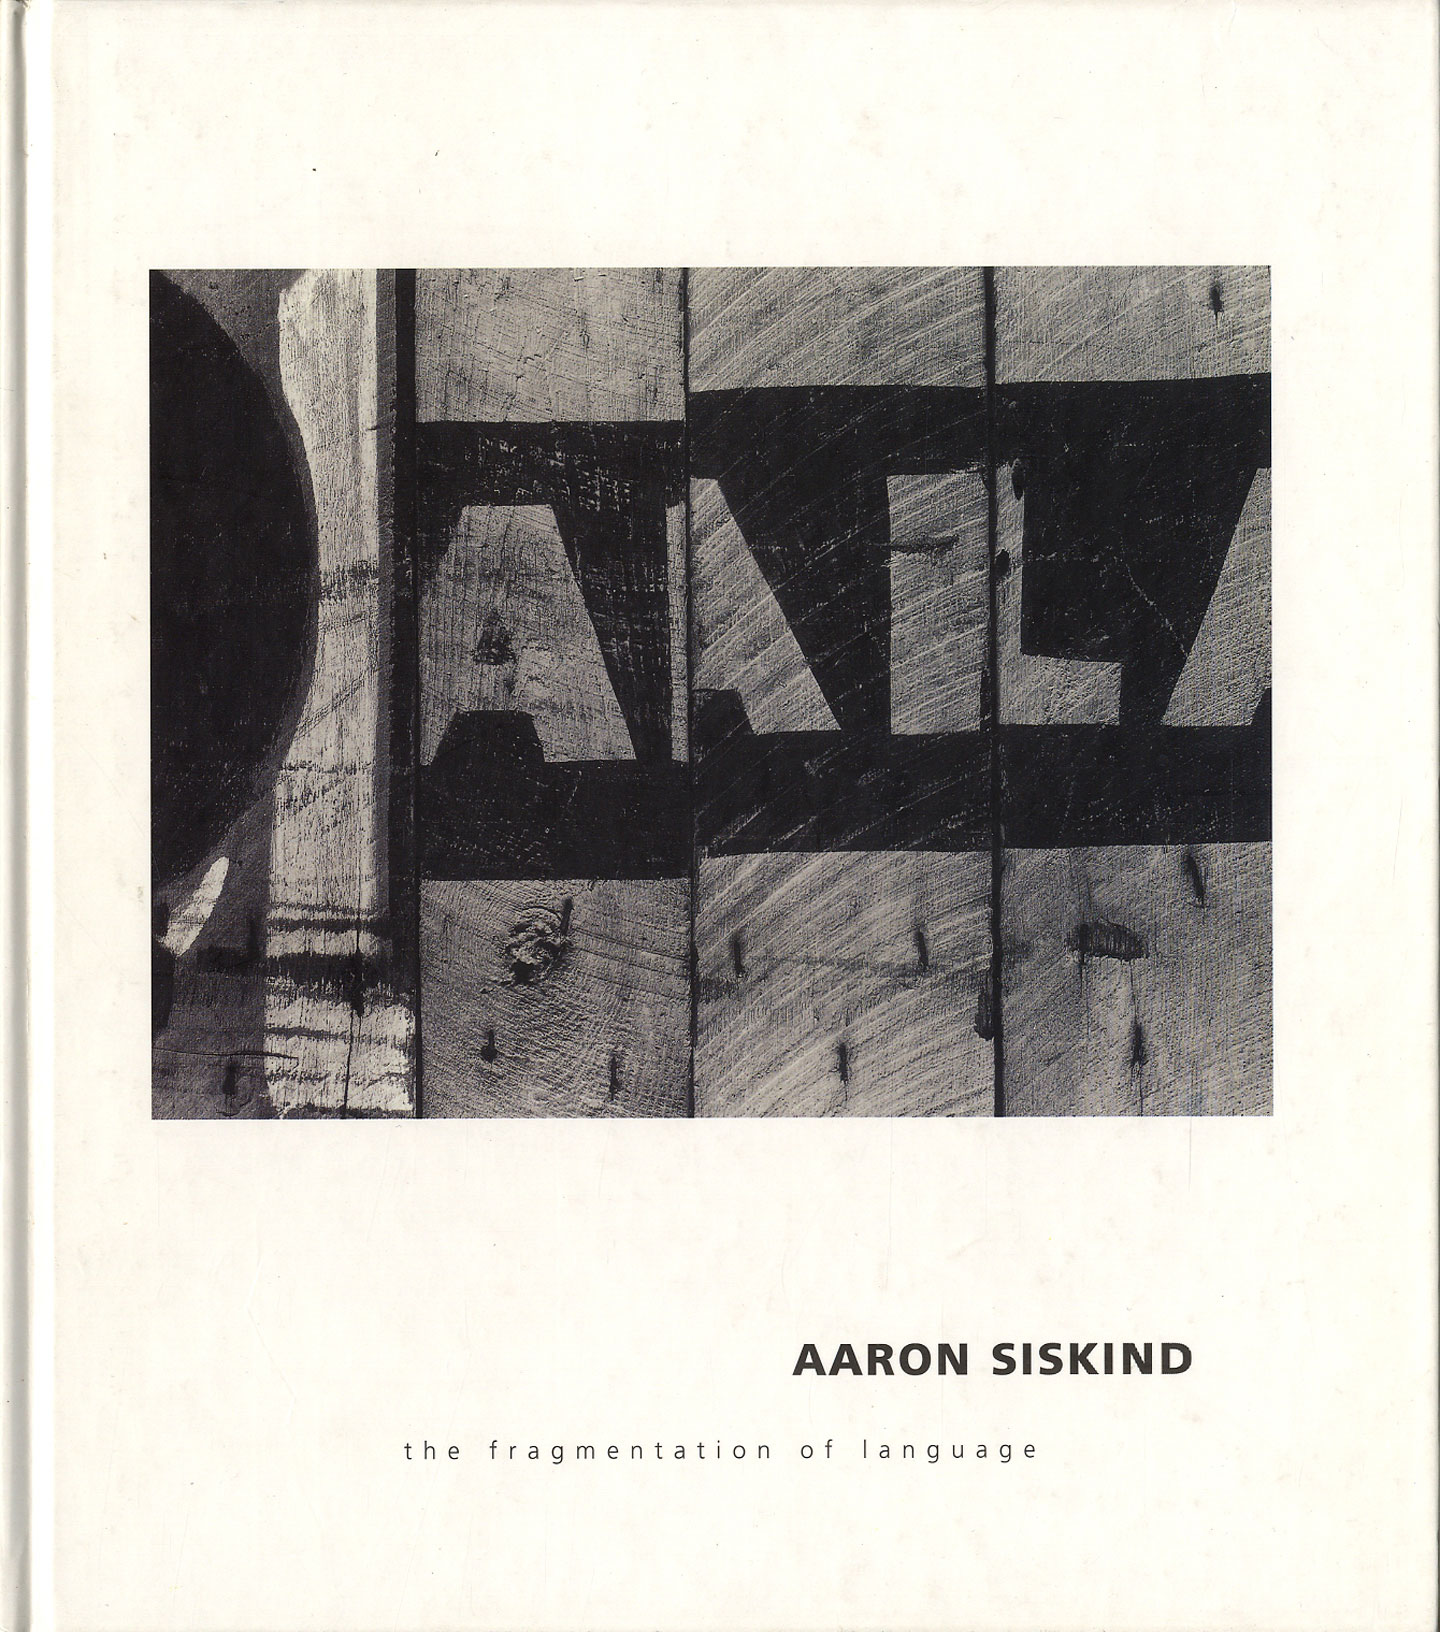 Aaron Siskind : The Fragmentation of Language (Robert Mann Gallery)